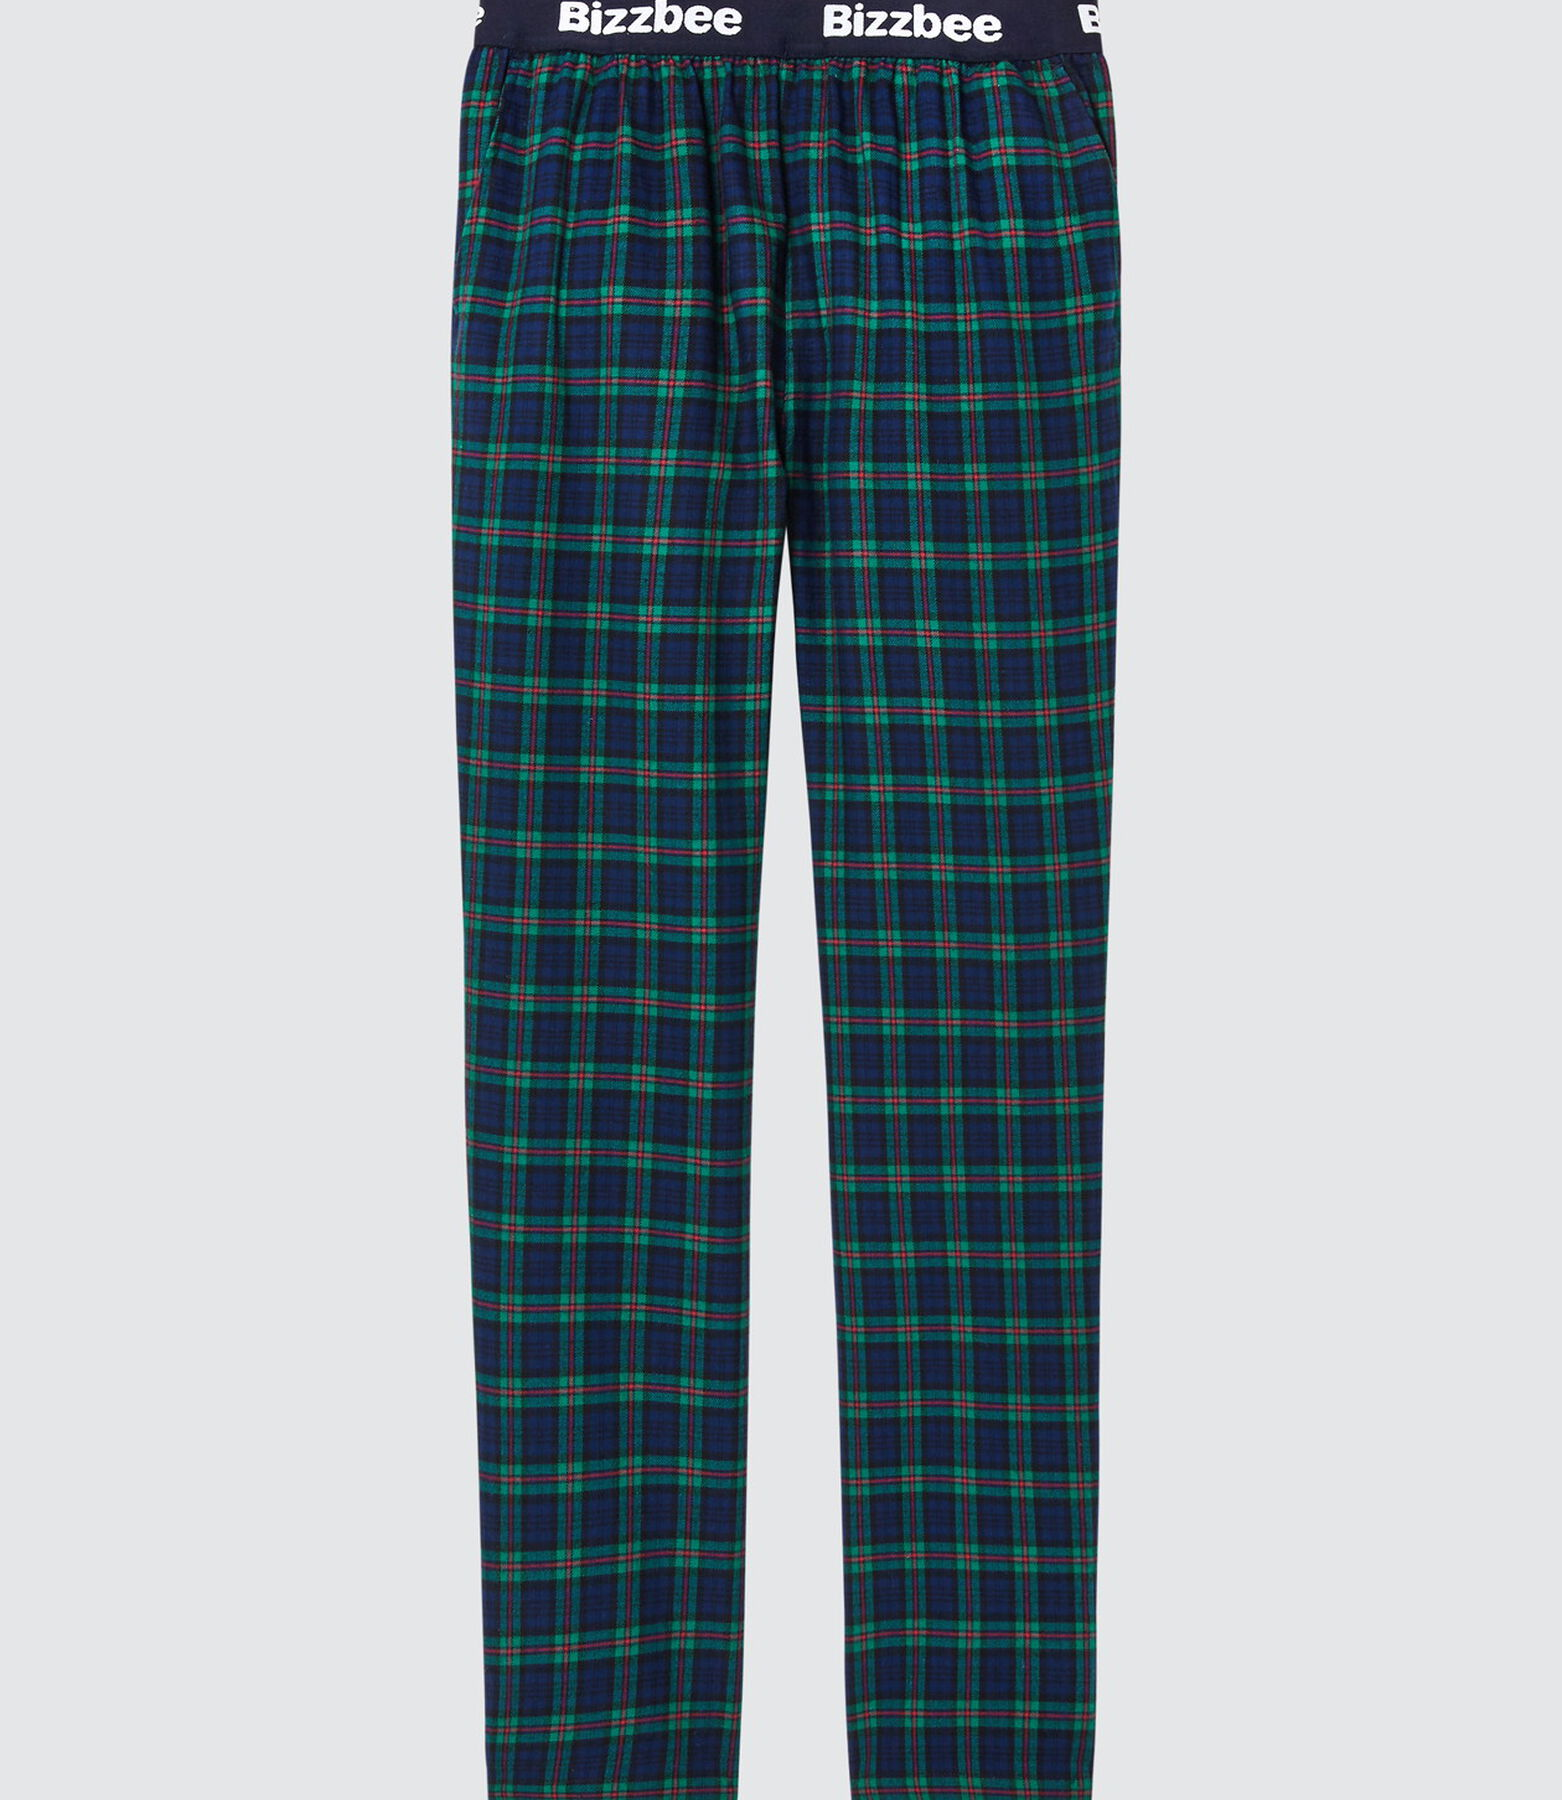 Pantalon Pyjama Carreau